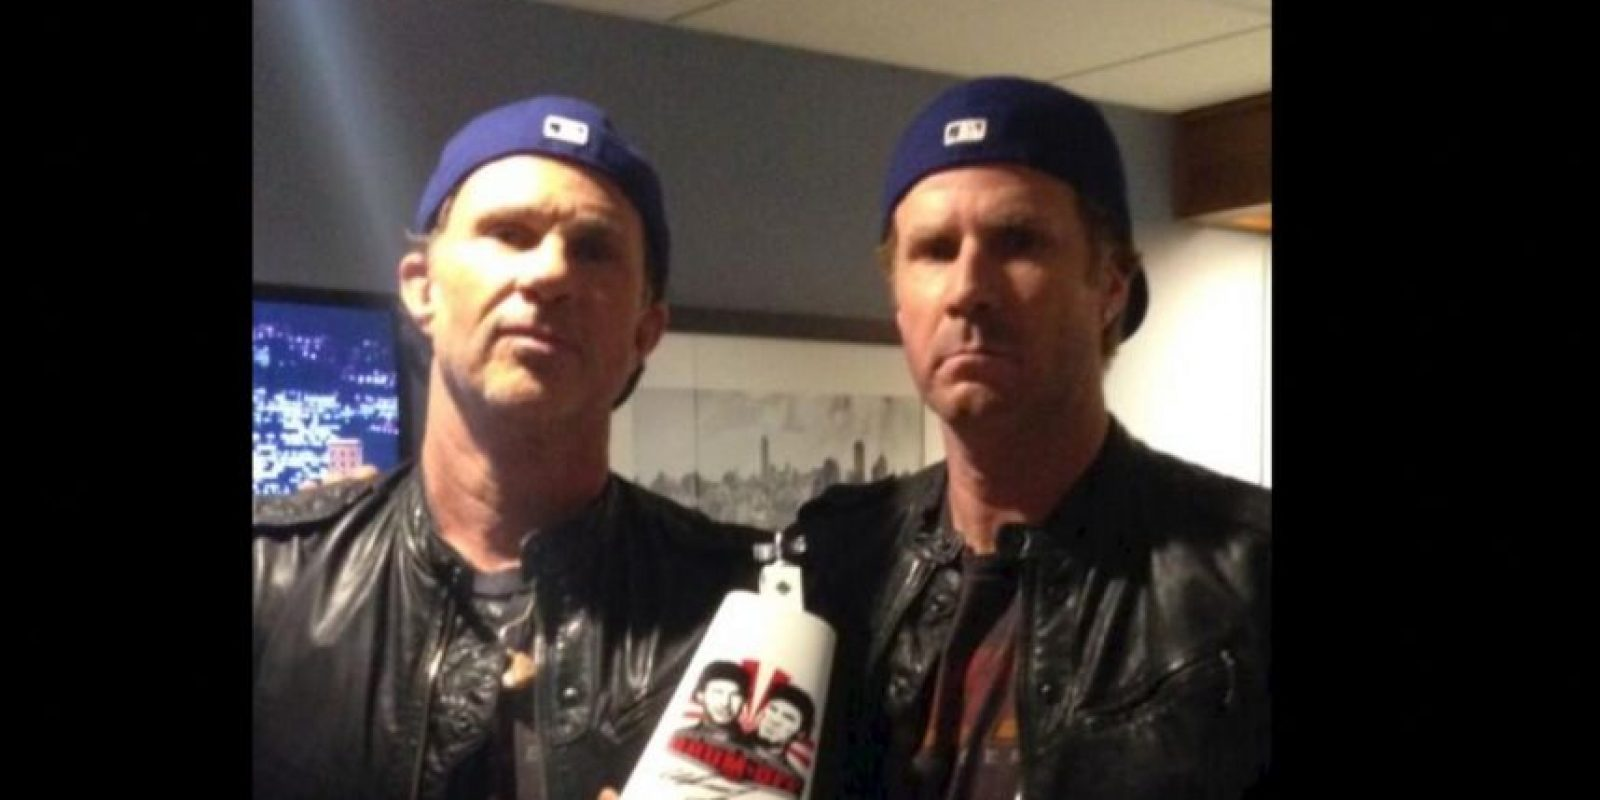 1. Chad Smith y Will Ferrel Foto: Twitter.com/RHCPChad